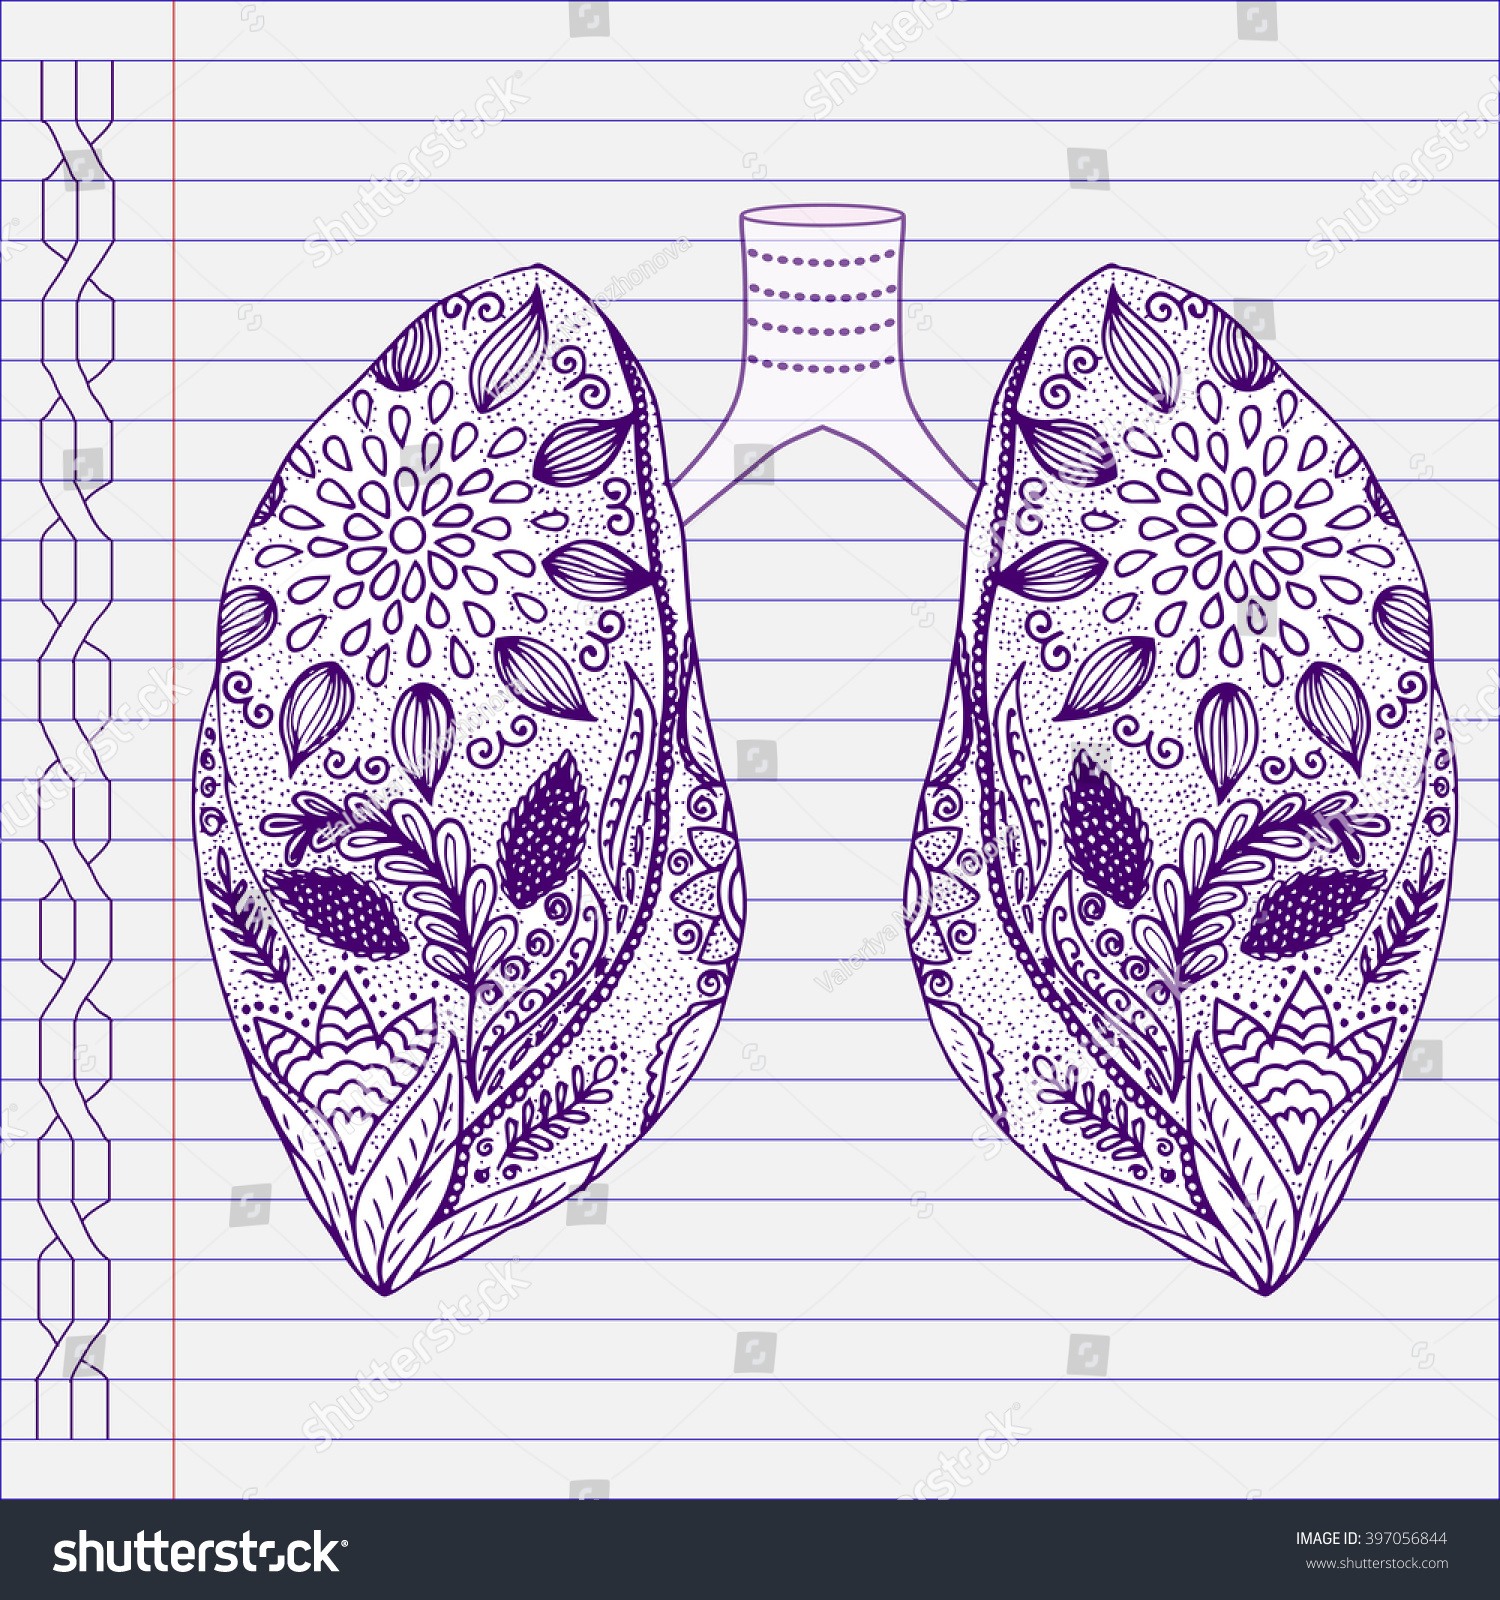 Asthma Illness Clipart stock vector. Illustration of ... |Human Lungs With Asthma